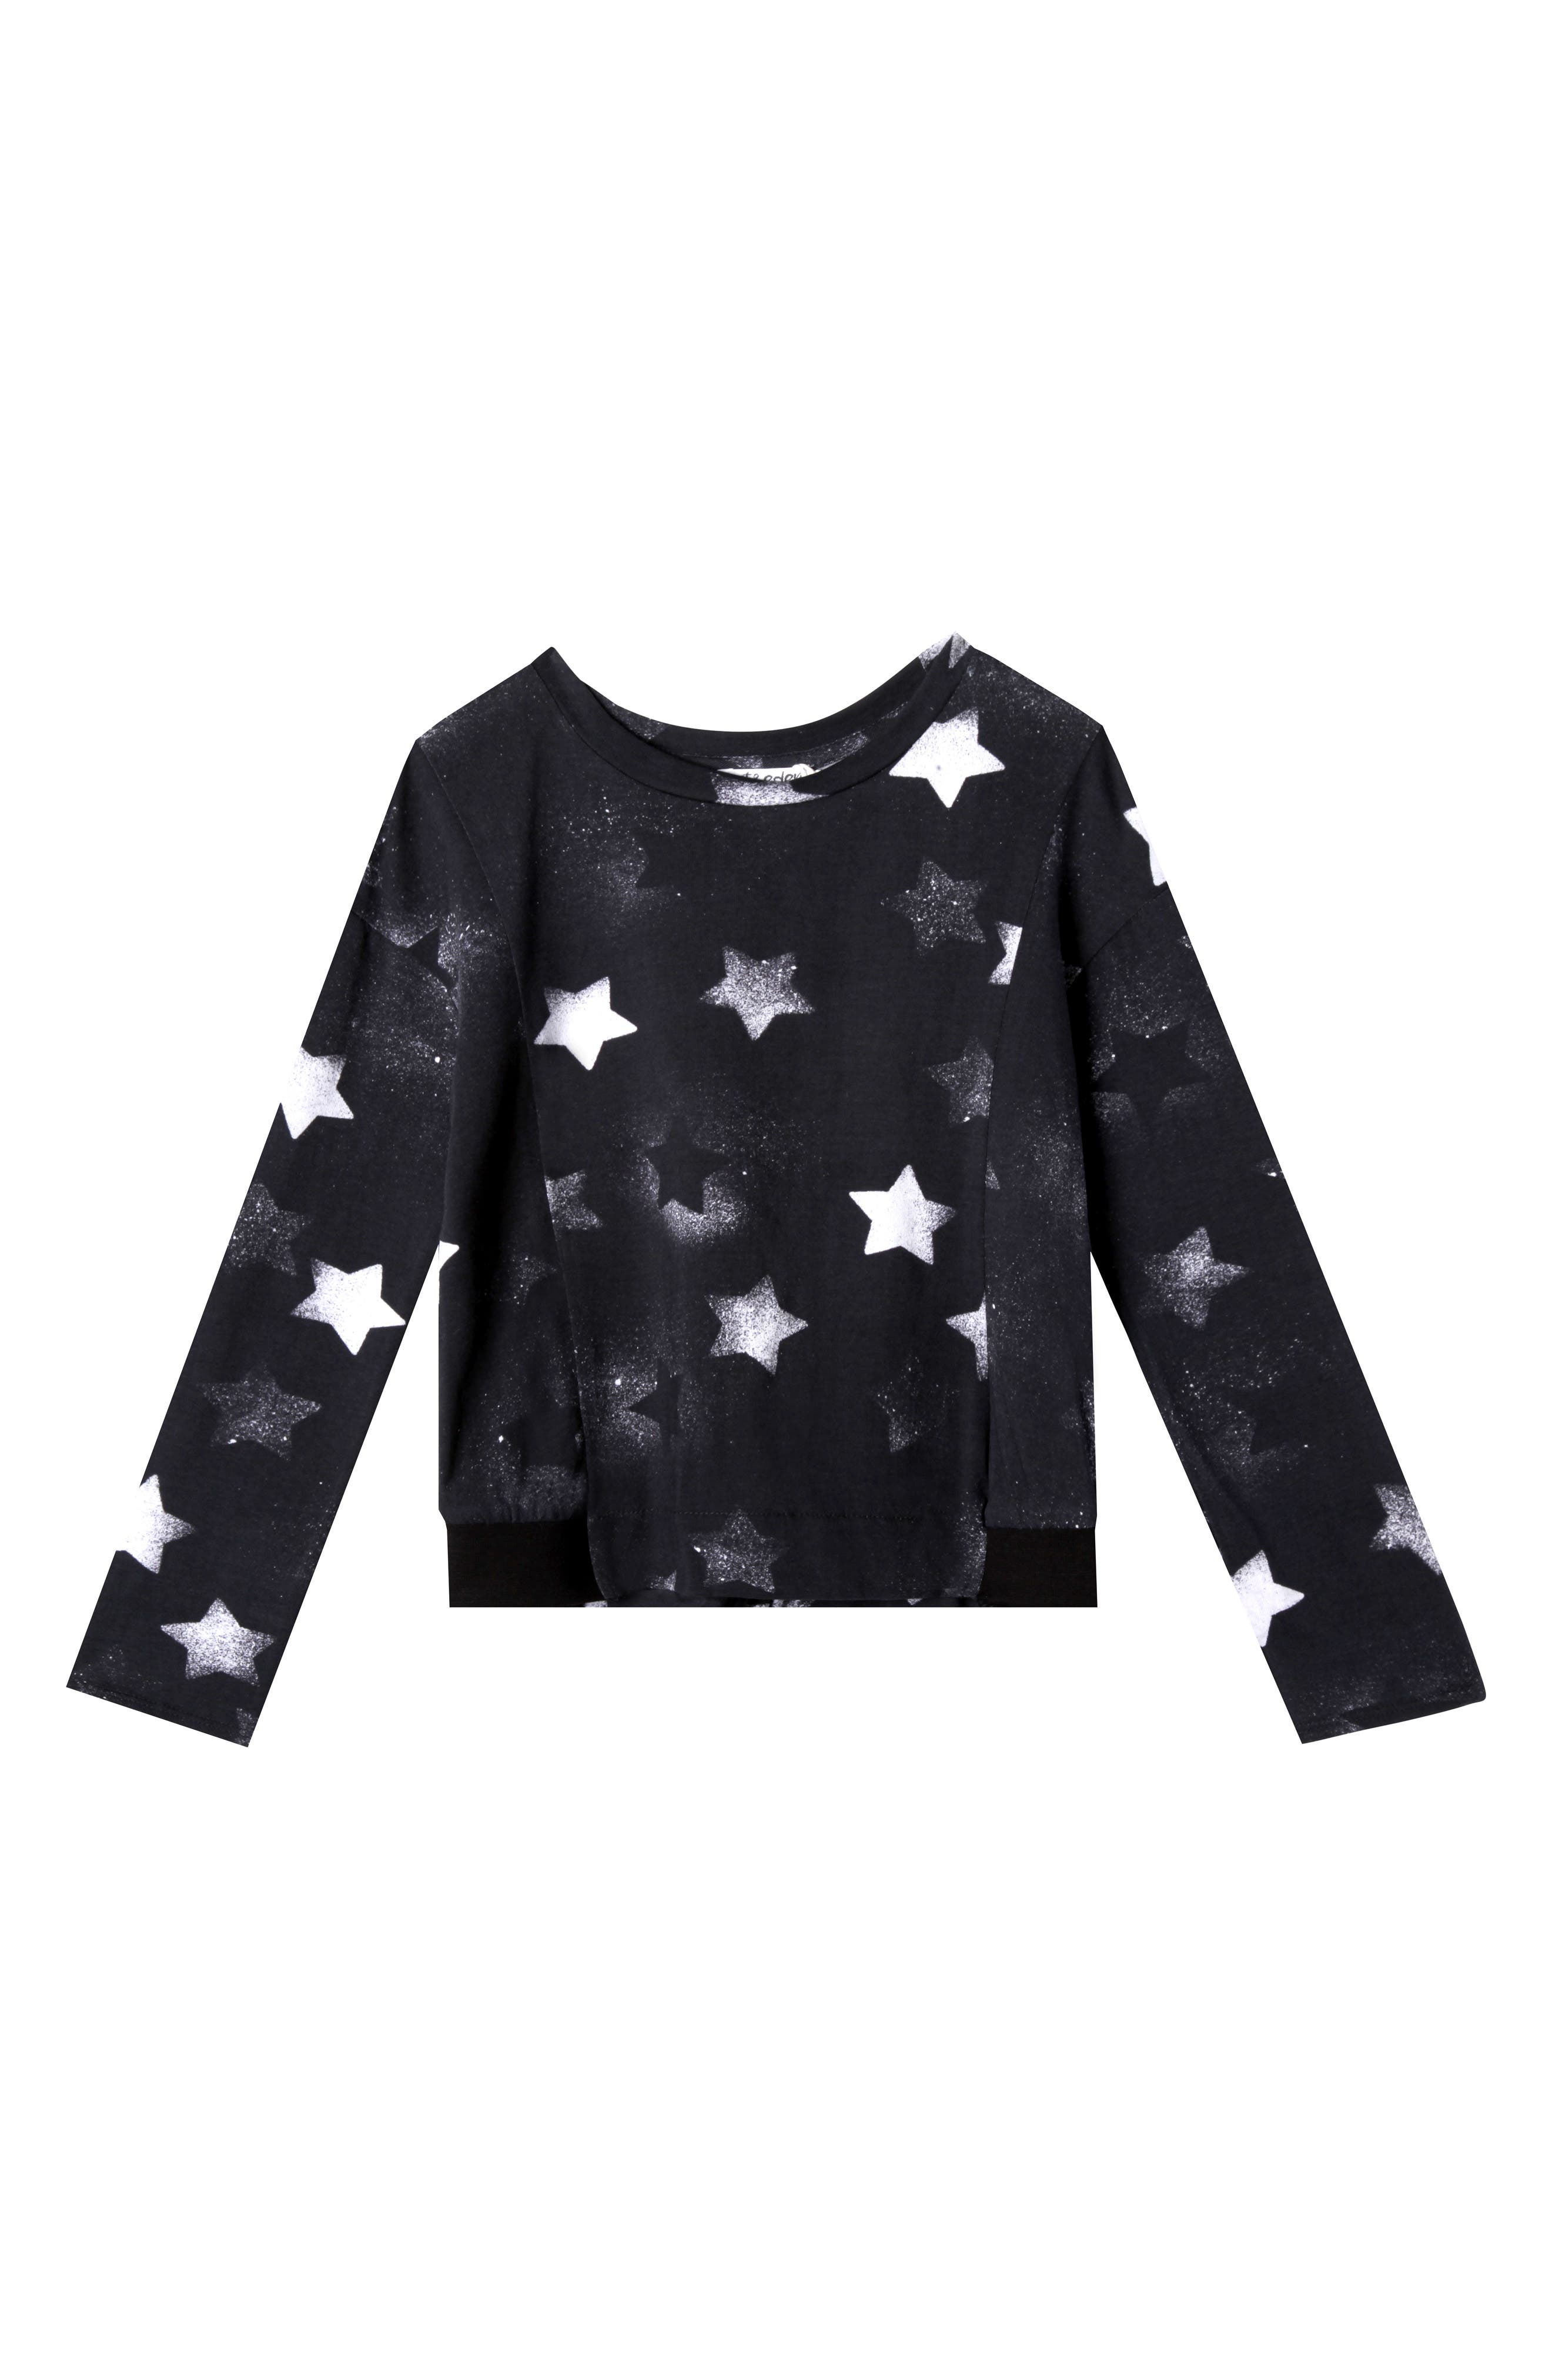 Alternate Image 1 Selected - Art & Eden Eva Star Print Tee (Toddler Girls & Little Girls)